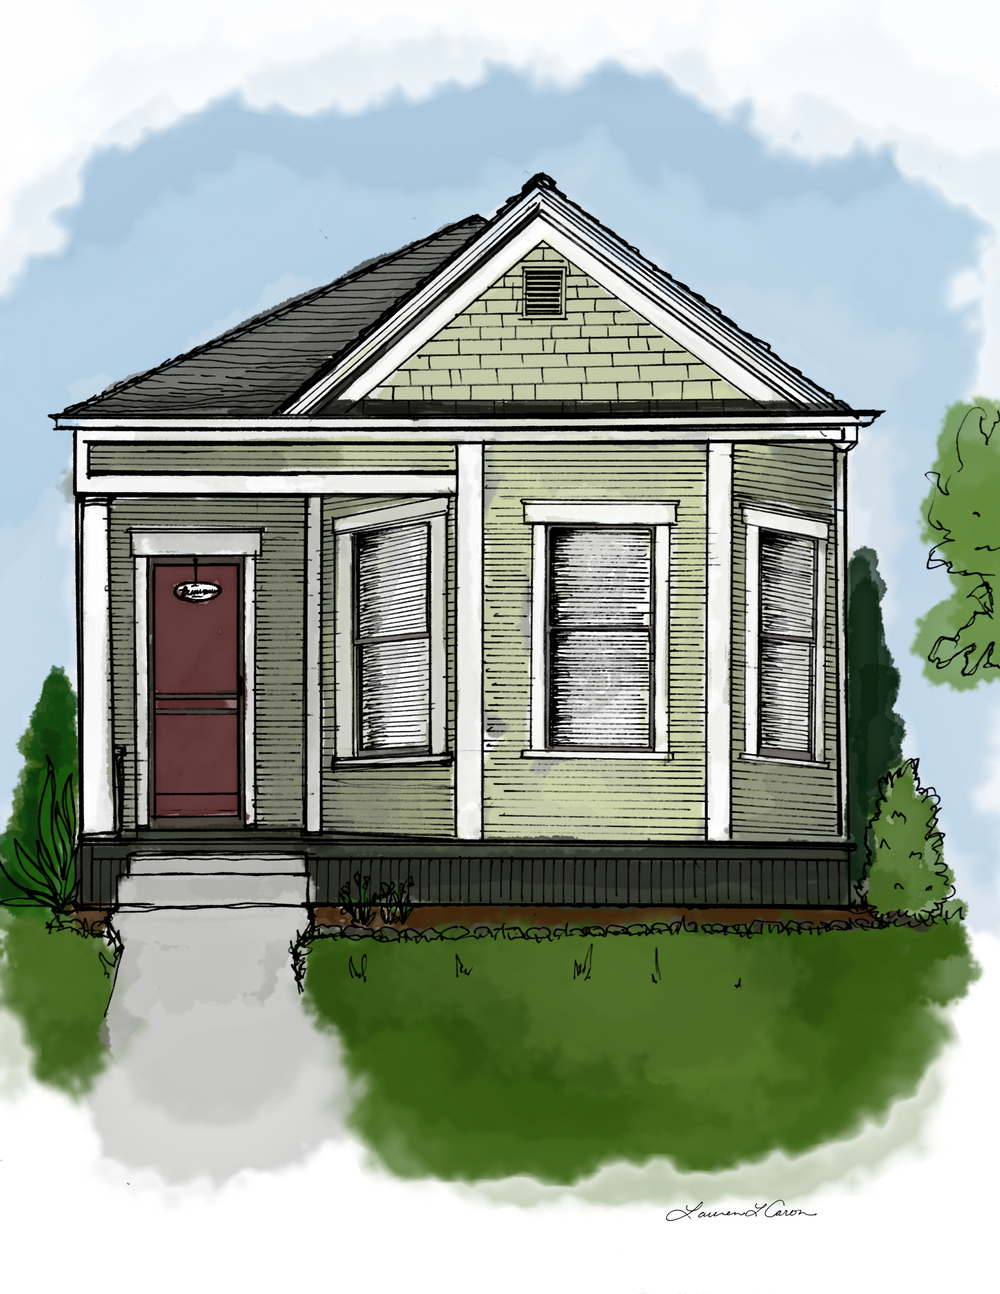 A sketch of our little house that